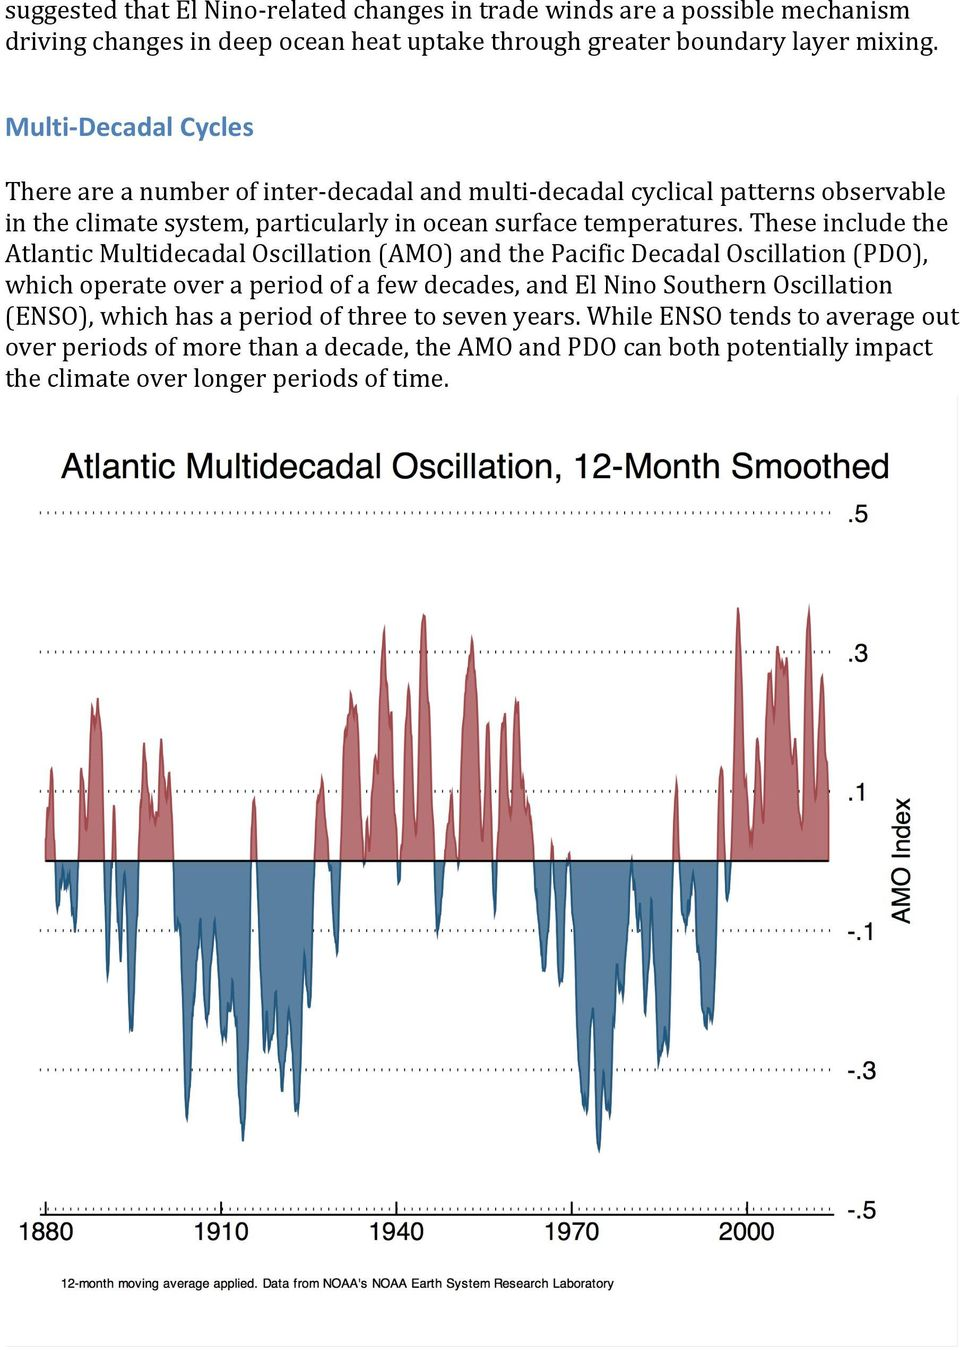 These include the Atlantic Multidecadal Oscillation (AMO) and the Pacific Decadal Oscillation (PDO), which operate over a period of a few decades, and El Nino Southern Oscillation